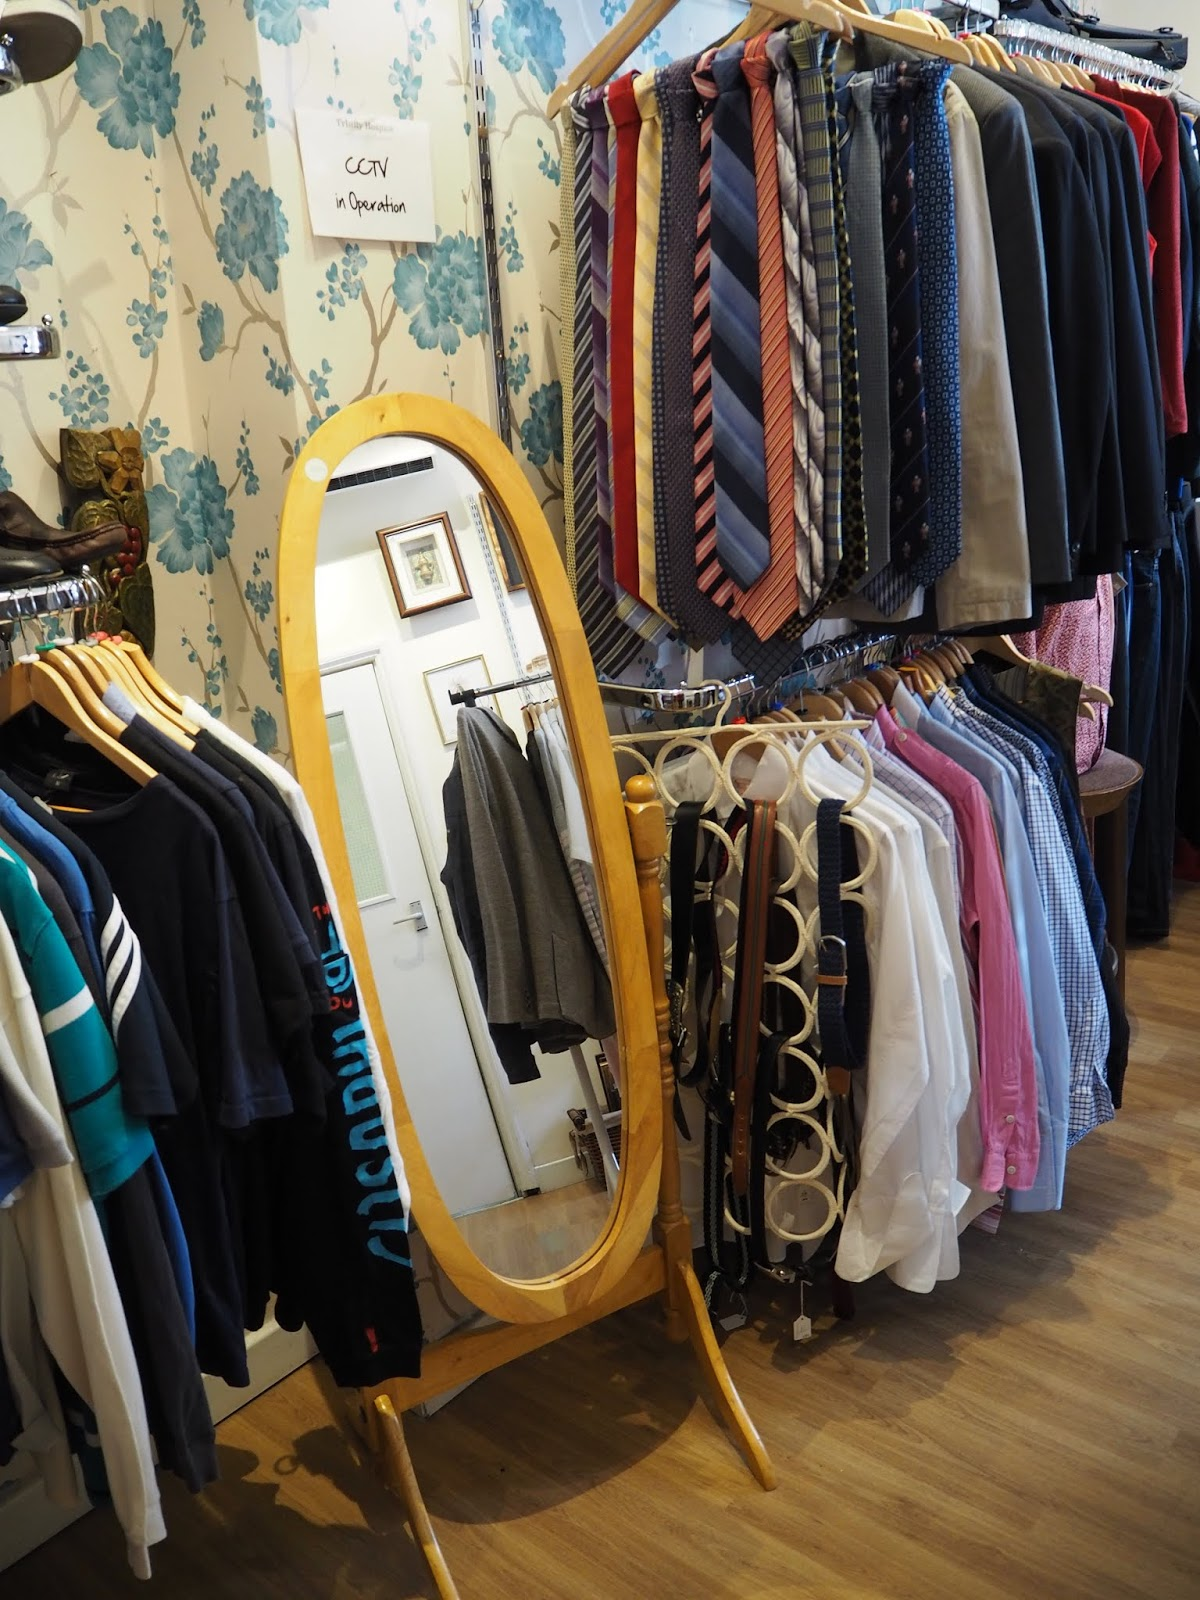 a standing mirror in a vintage shop